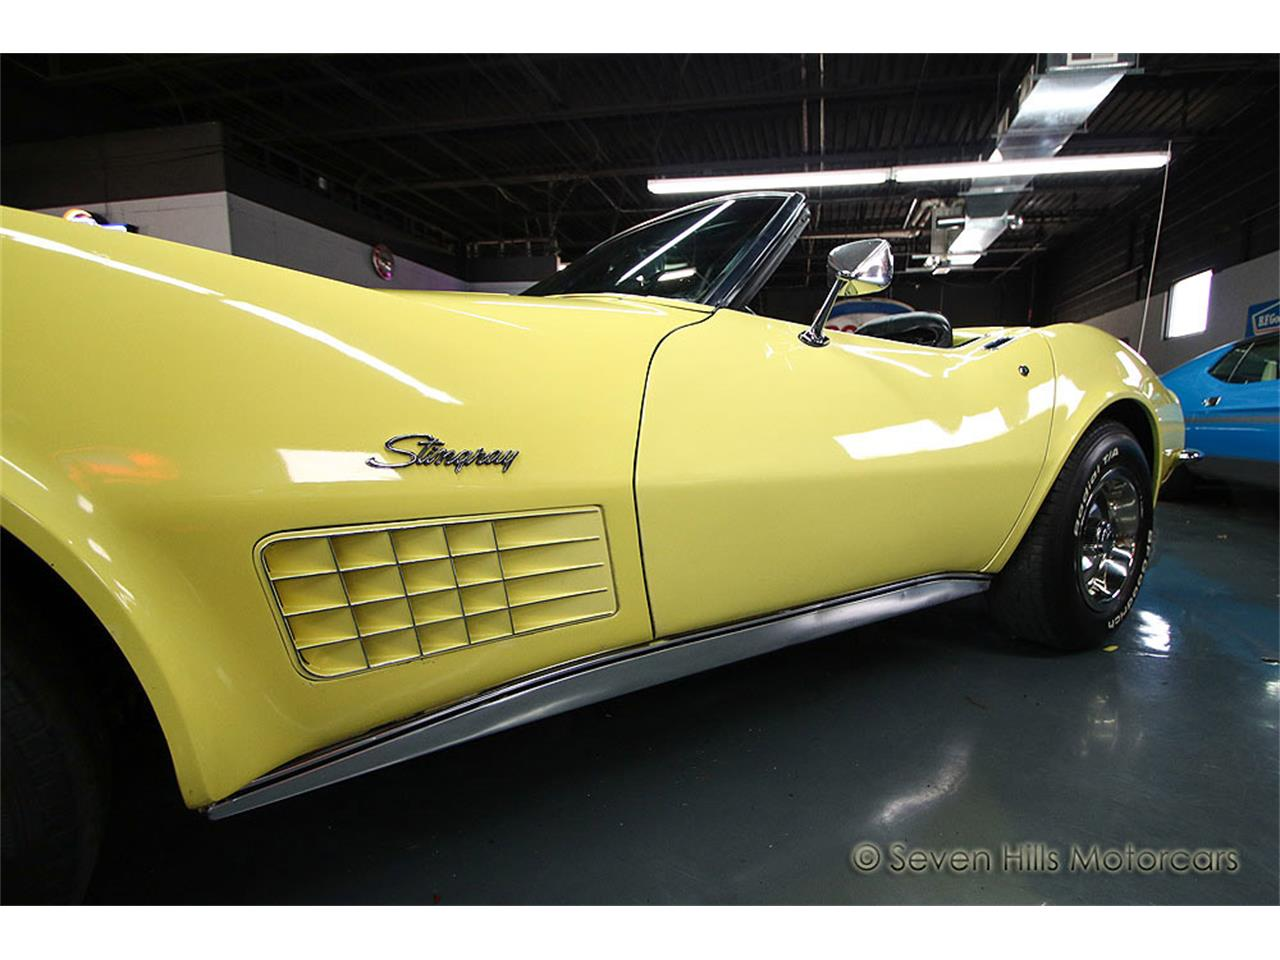 Large Picture of 1971 Chevrolet Corvette located in Ohio - $27,900.00 Offered by Seven Hills Motorcars - NN0A